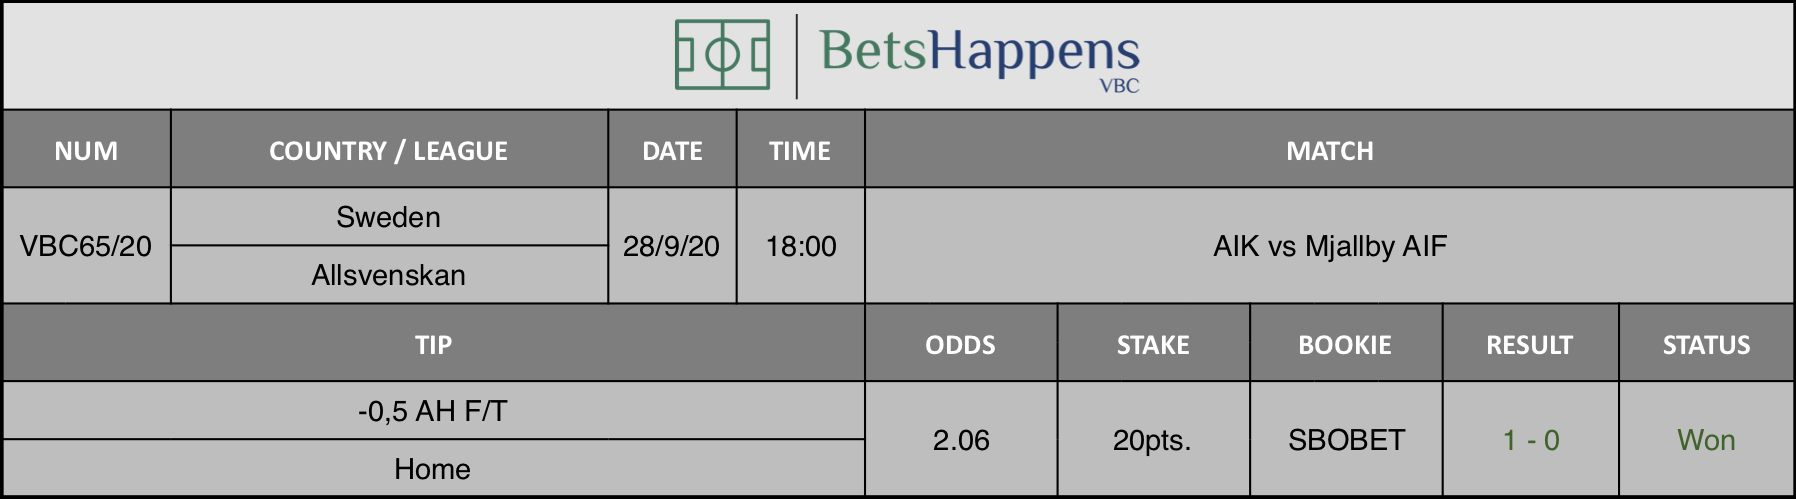 Results of our tip for the AIK vs Mjallby AIF match where -0.5 AH F / T Home is recommended.